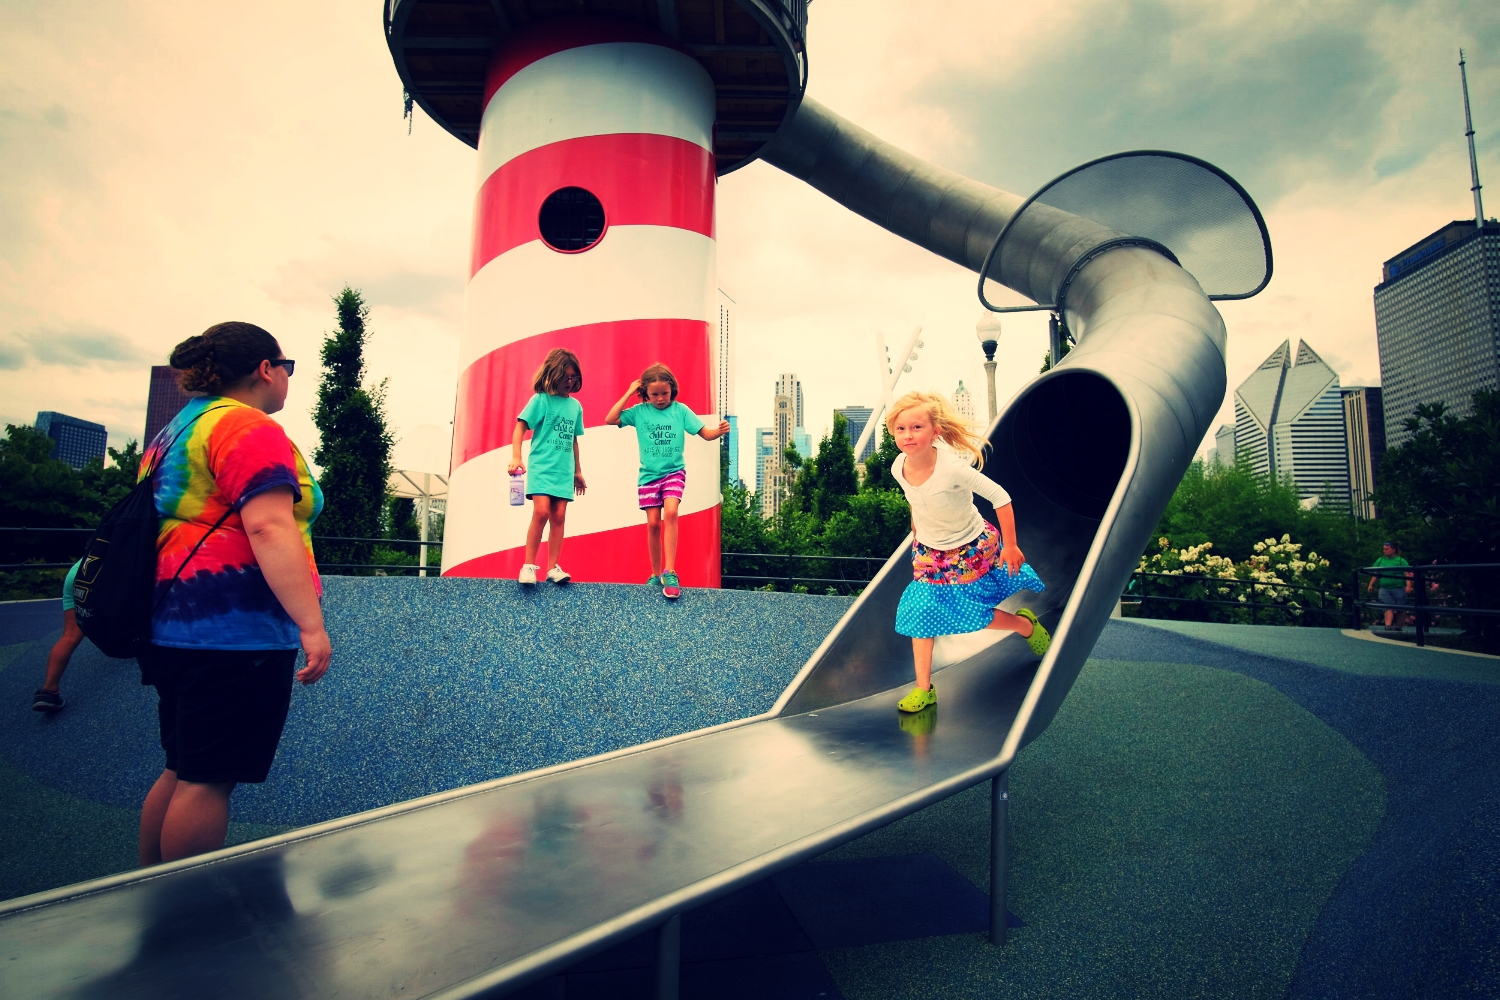 Maggie Daly Playground, Grant Park, Chicago